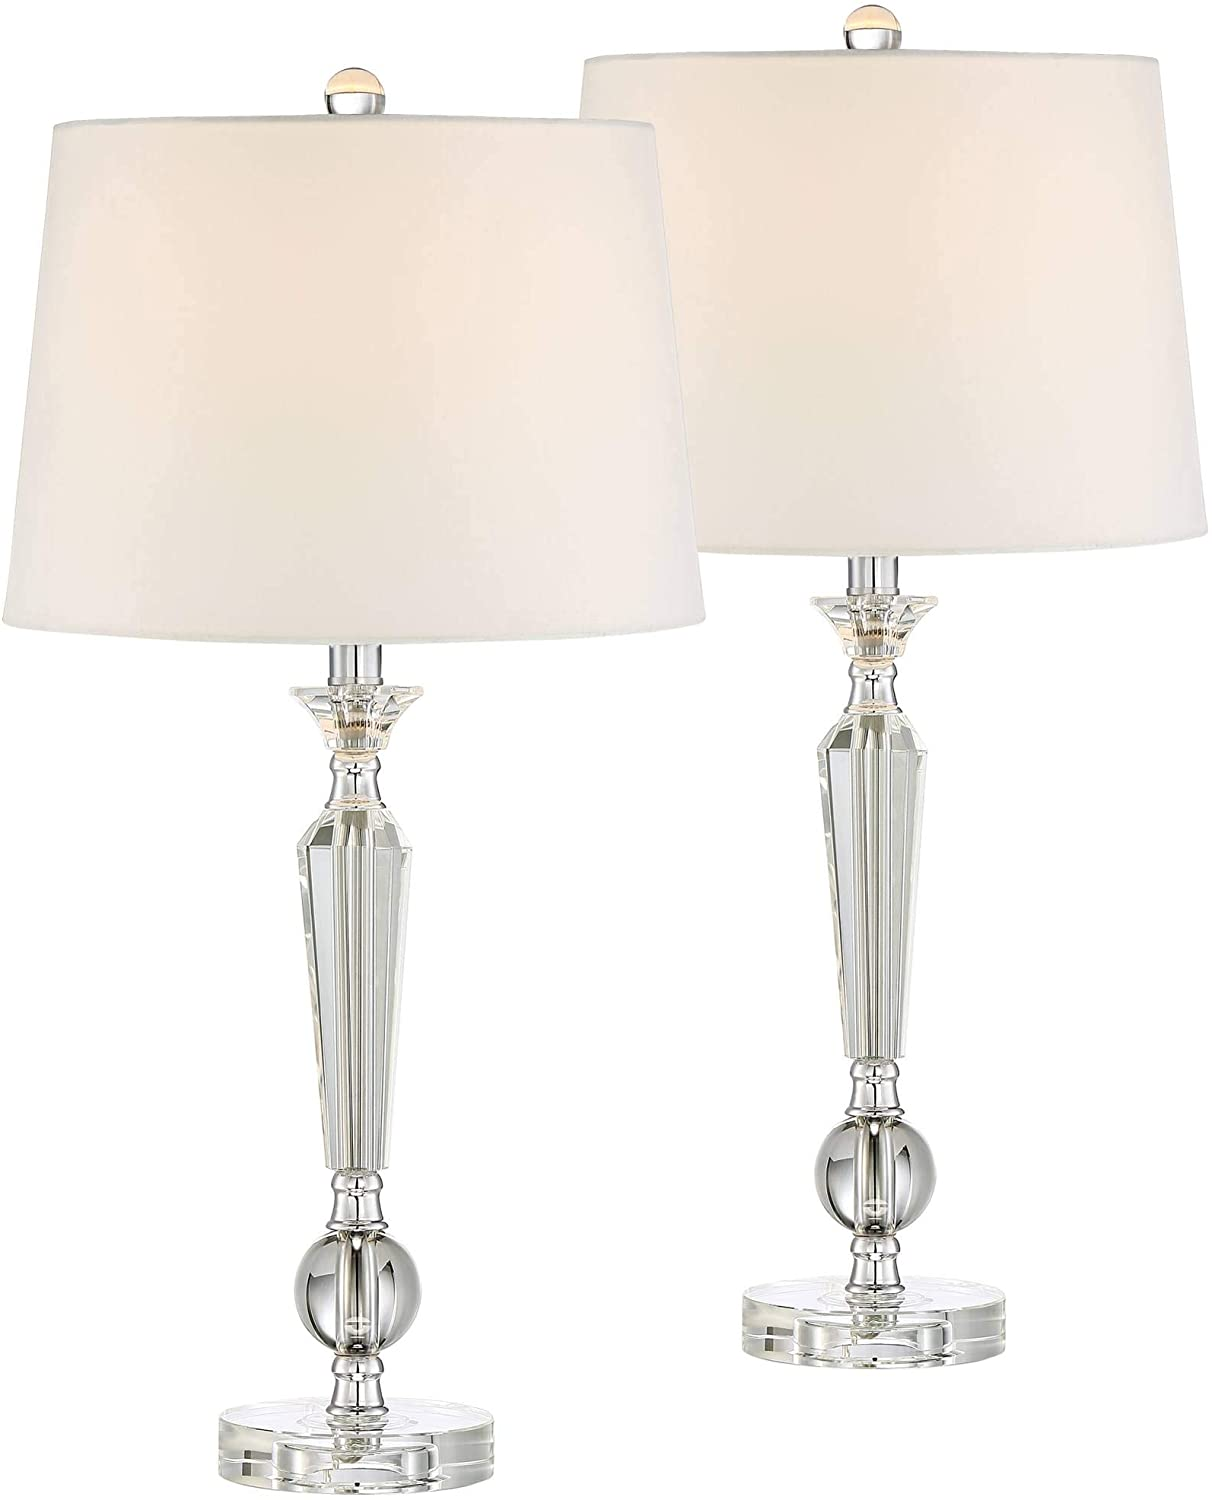 Jolie Modern Table Lamps Set of 2 with WiFi Smart Sockets Crystal Candlestick Off White Tapered Drum Shade for Living Room Bedroom Bedside Nightstand Office Family - Vienna Full Spectrum